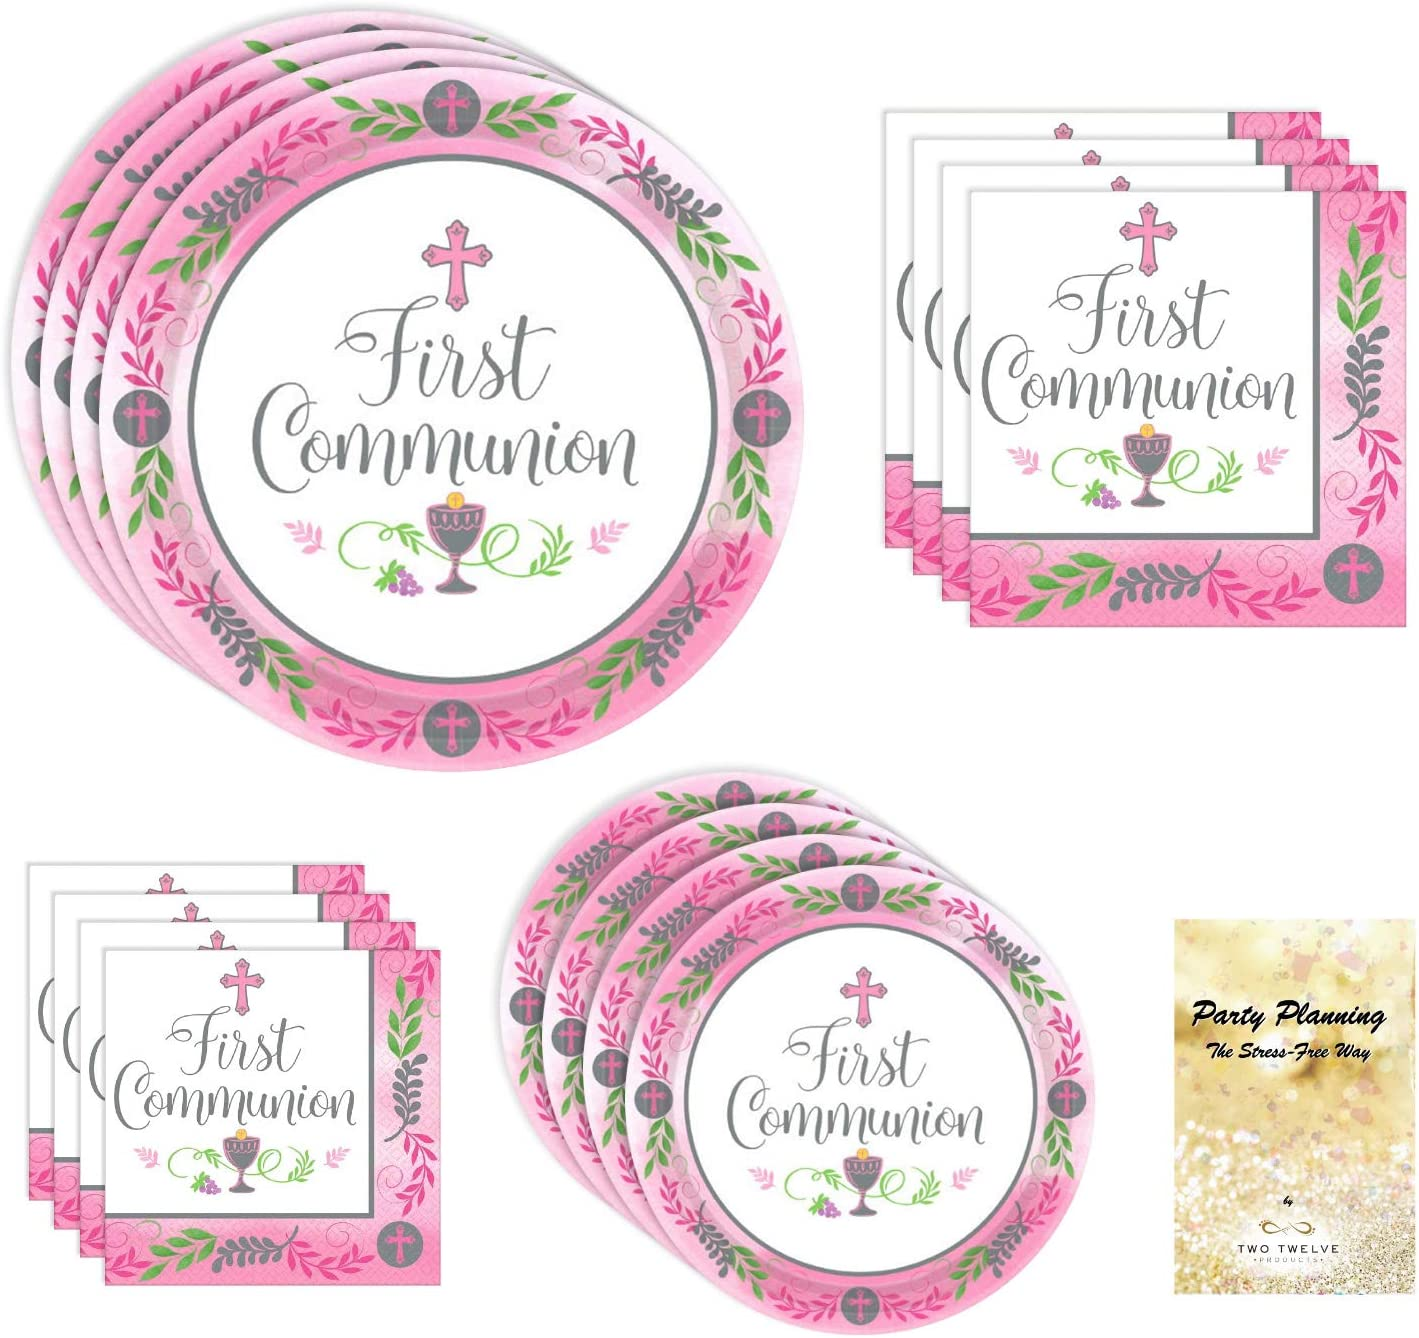 First Holy Communion Party Supplies, Pink Design, 18 Guests, Disposable Paper Dinnerware Bundle, Dinner Plates, Dessert Plates, Lunch Napkins and Beverage Napkins